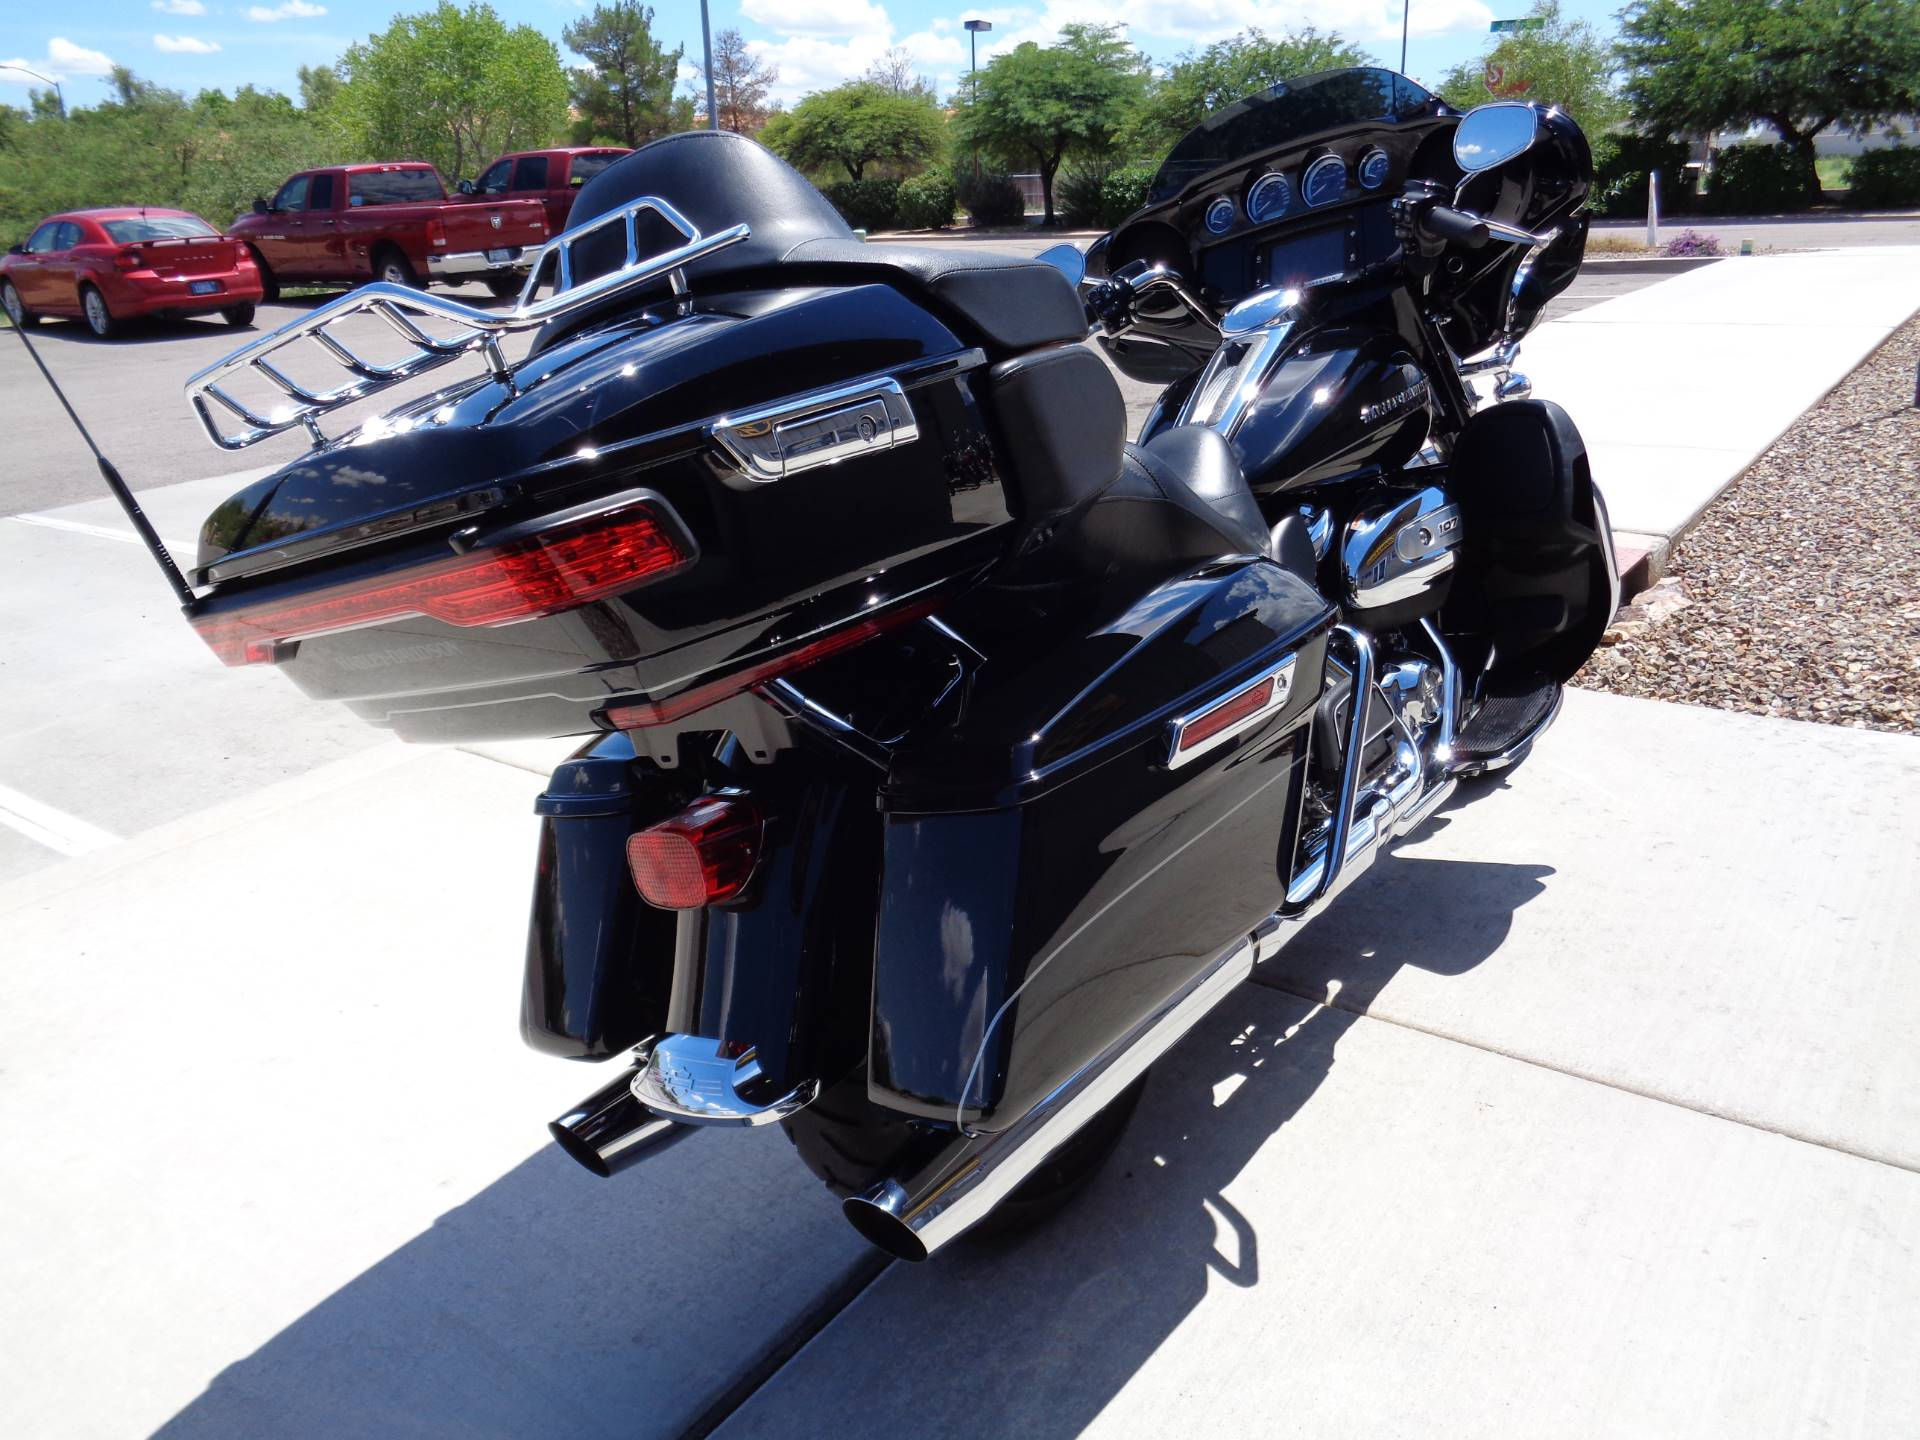 2017 Harley-Davidson Ultra Limited in Sierra Vista, Arizona - Photo 6